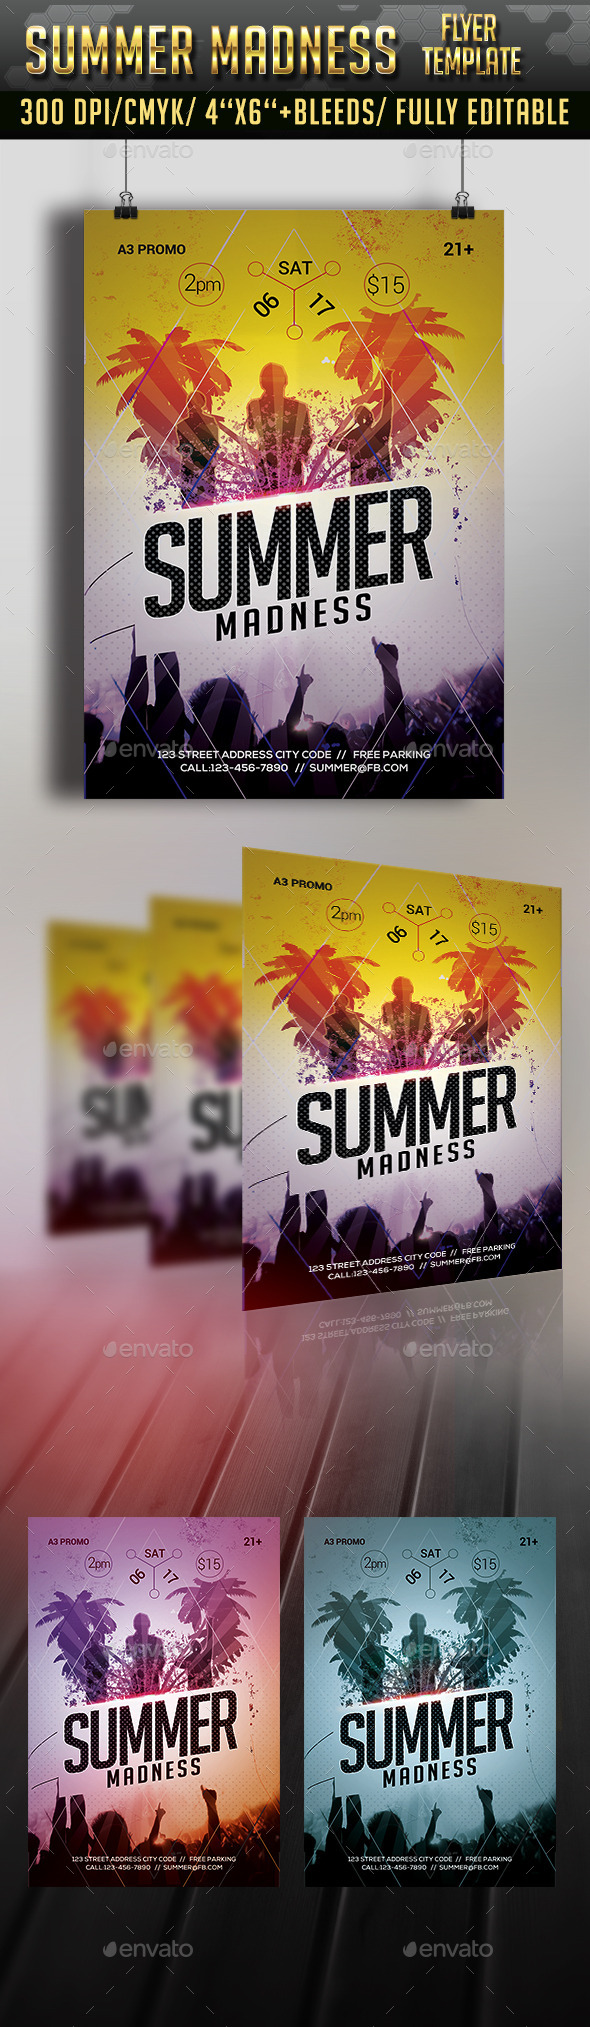 GraphicRiver Summer Madness Flyer Template 11772328